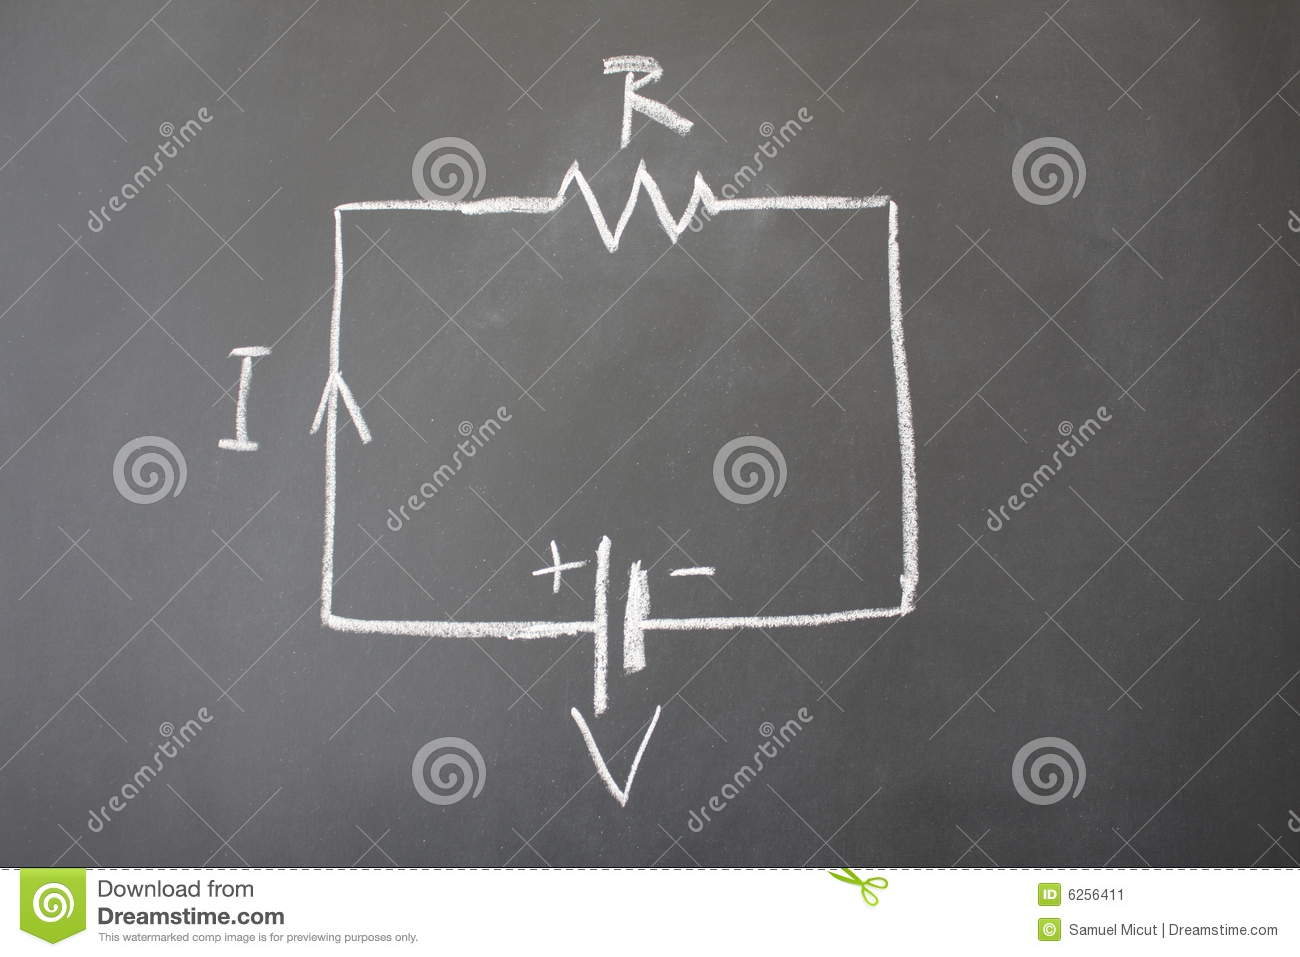 Simple Electrical Circuit Stock Image Of College 6256411 Diagram Showing A